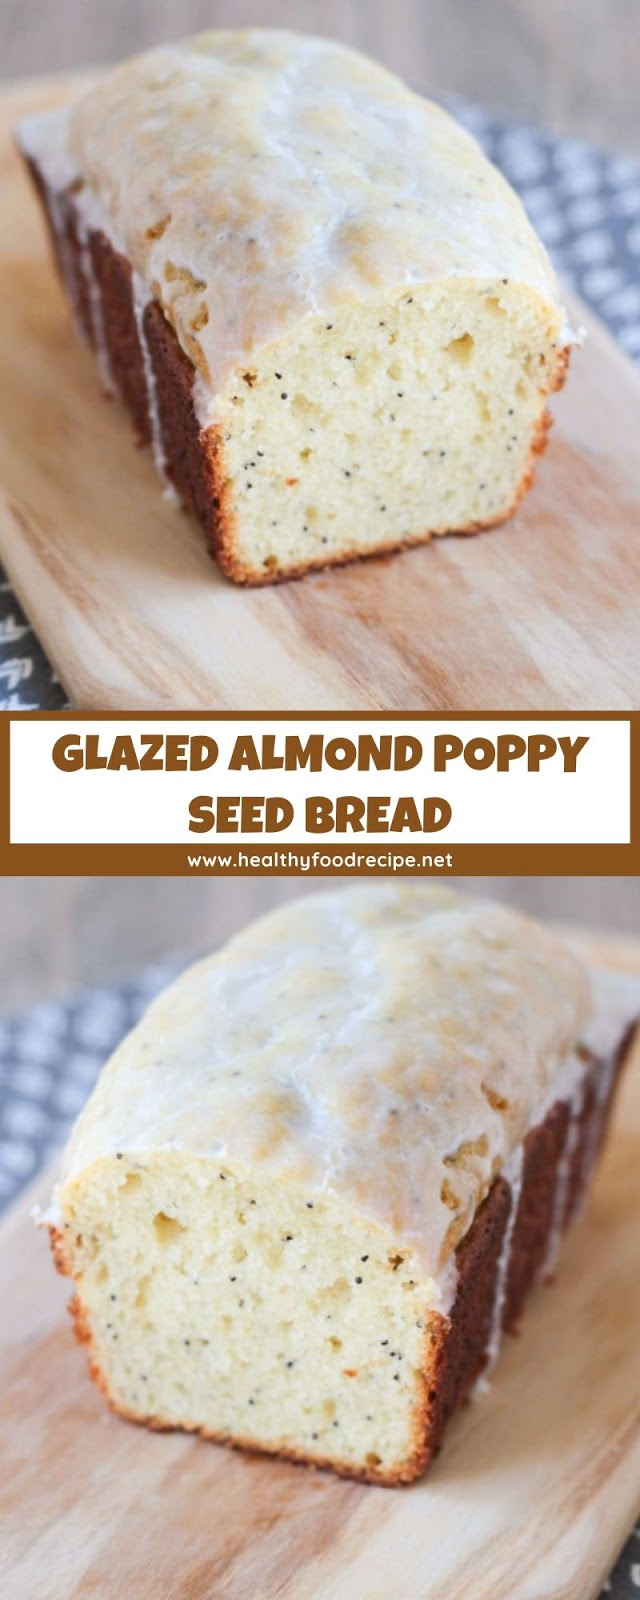 GLAZED ALMOND POPPY SEED BREAD